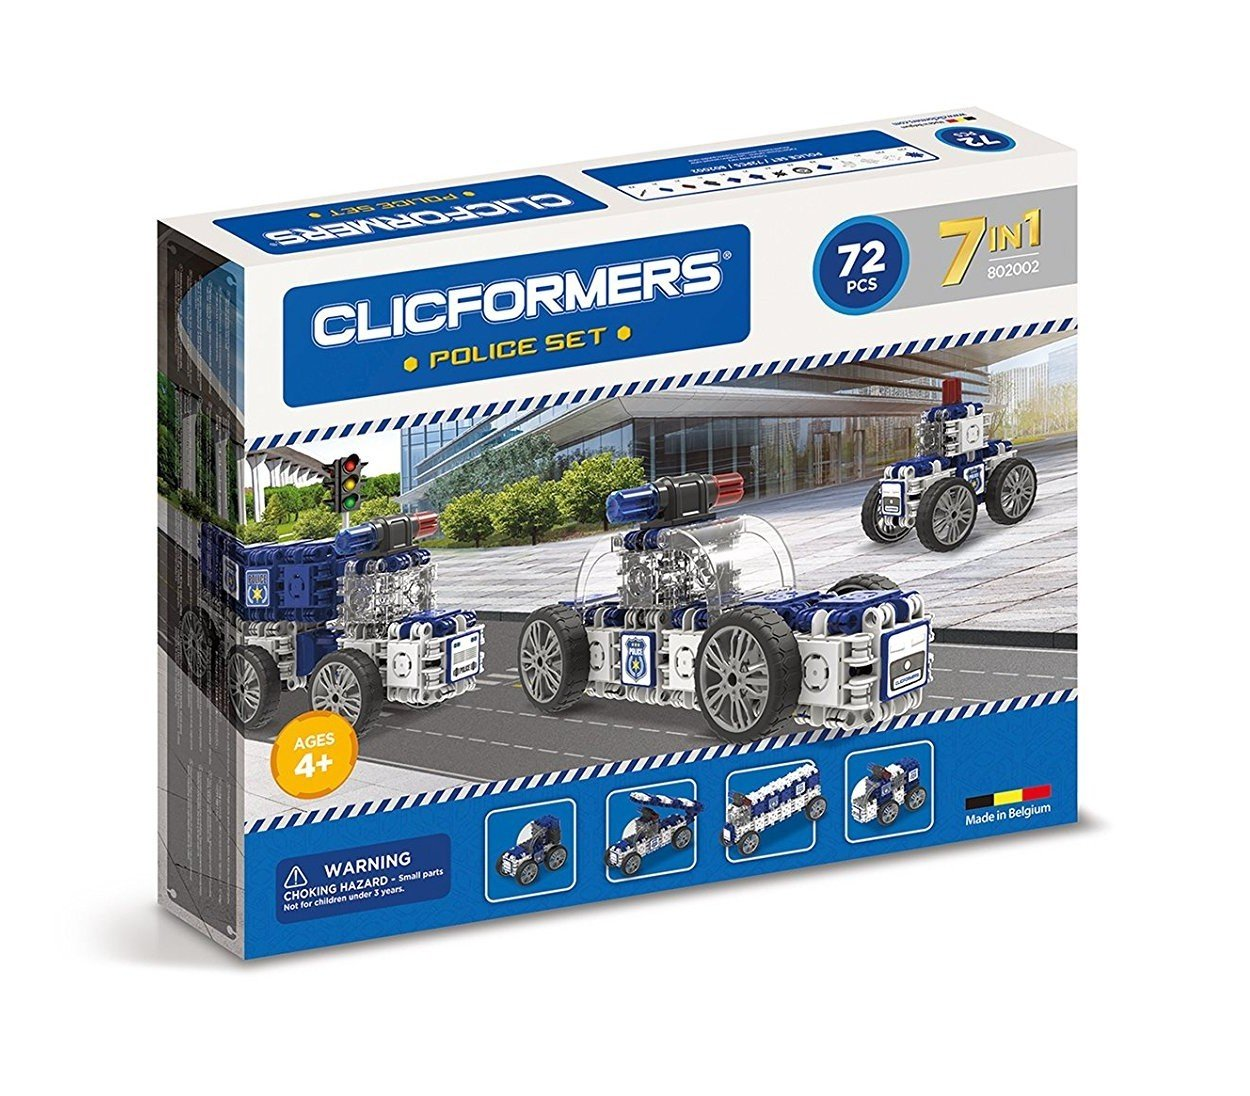 Clicformers 802002 Police Construction Toy